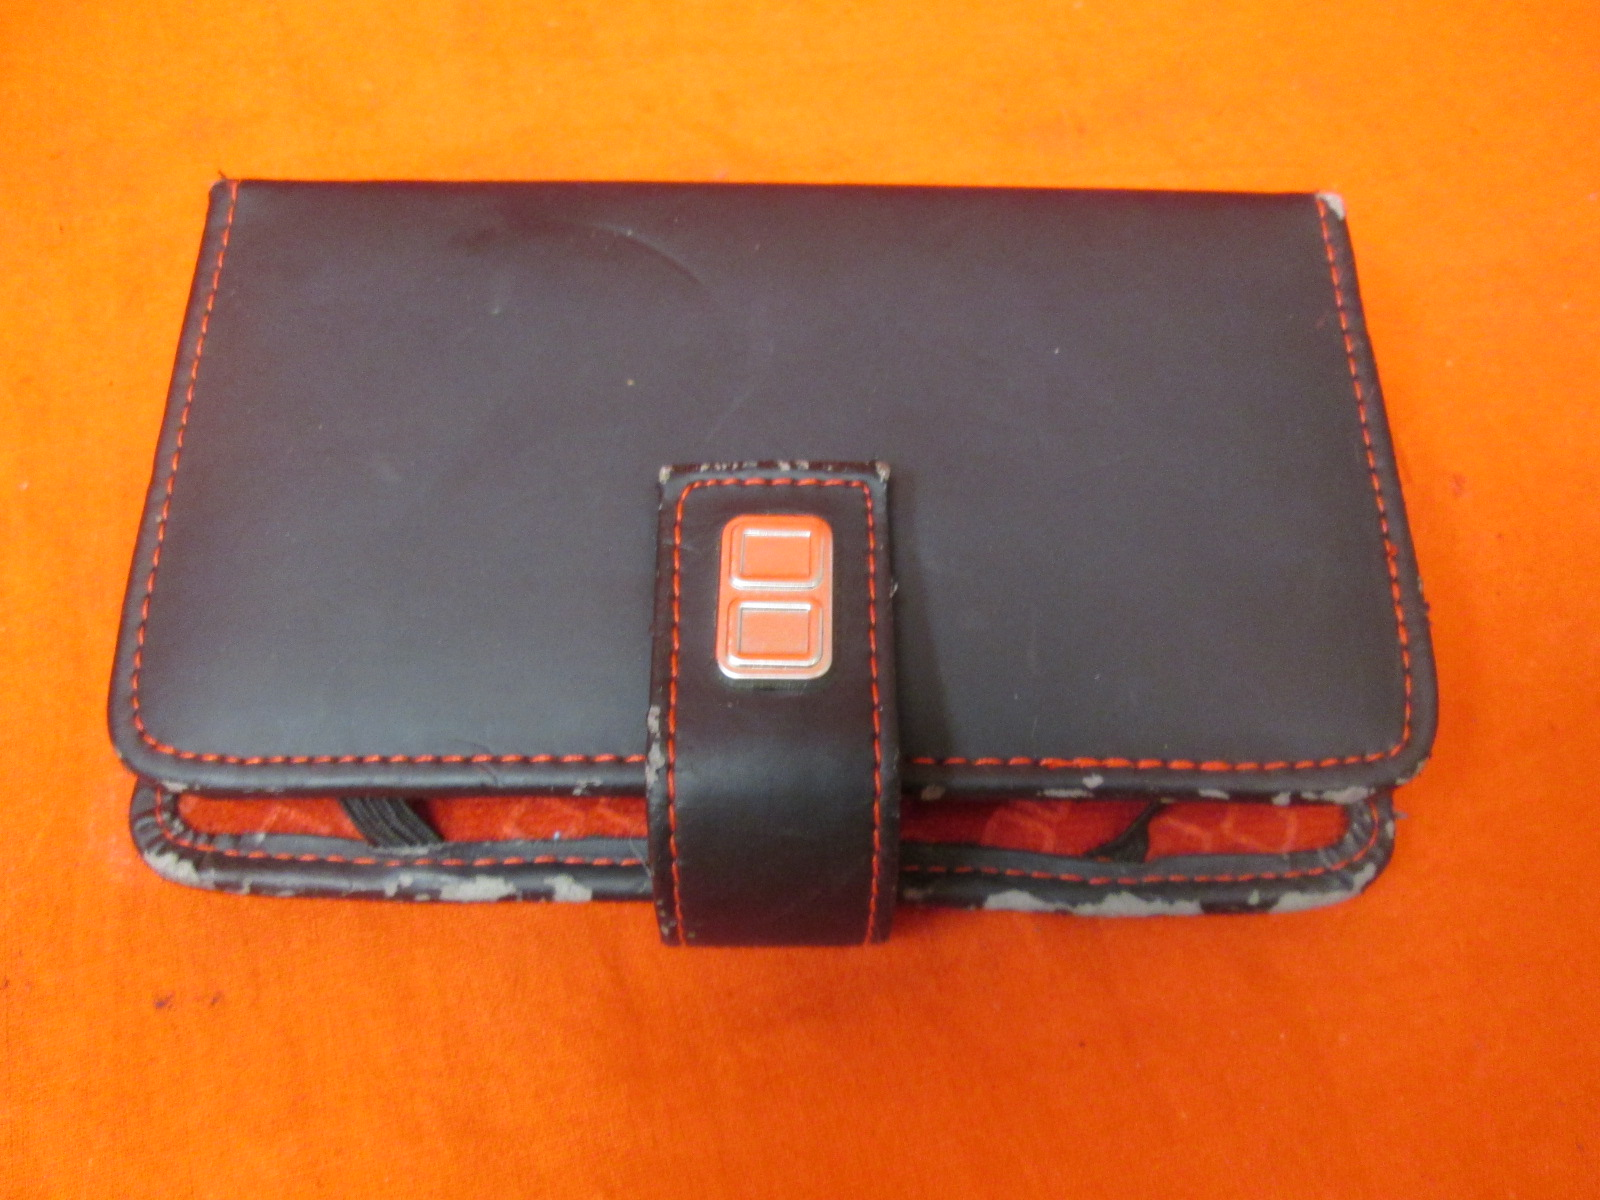 Nintendo Brand Leather Hard Case For Nintendo DS Handheld Console